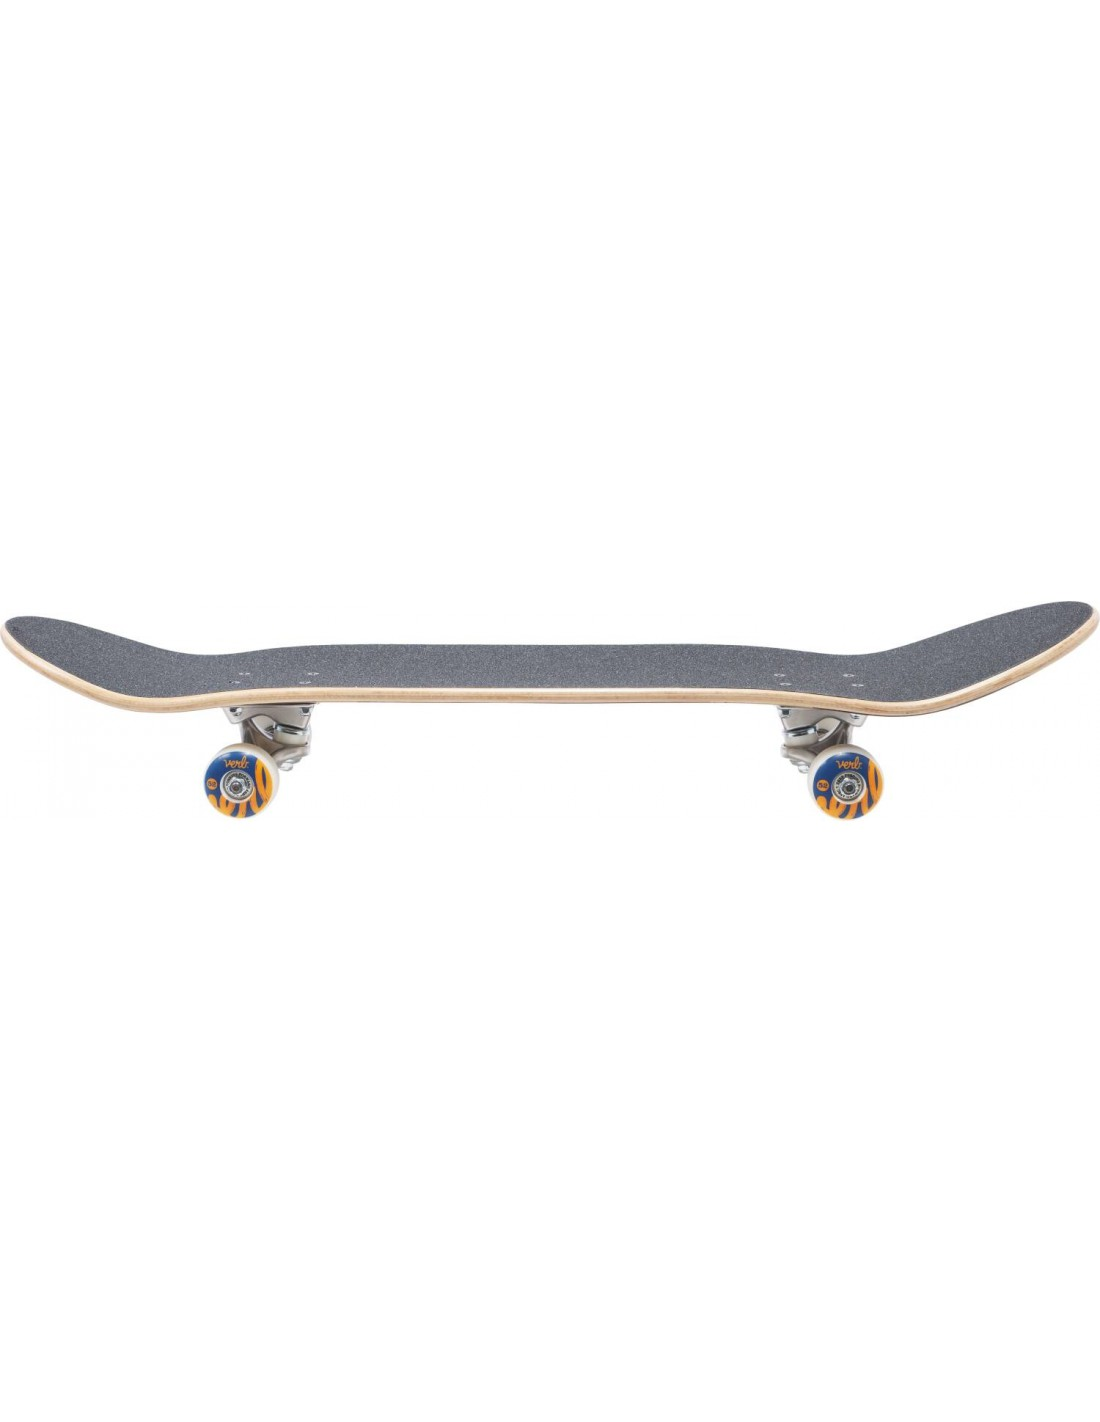 "Verb Complete Skateboard (8"", Paint Logo)-2"